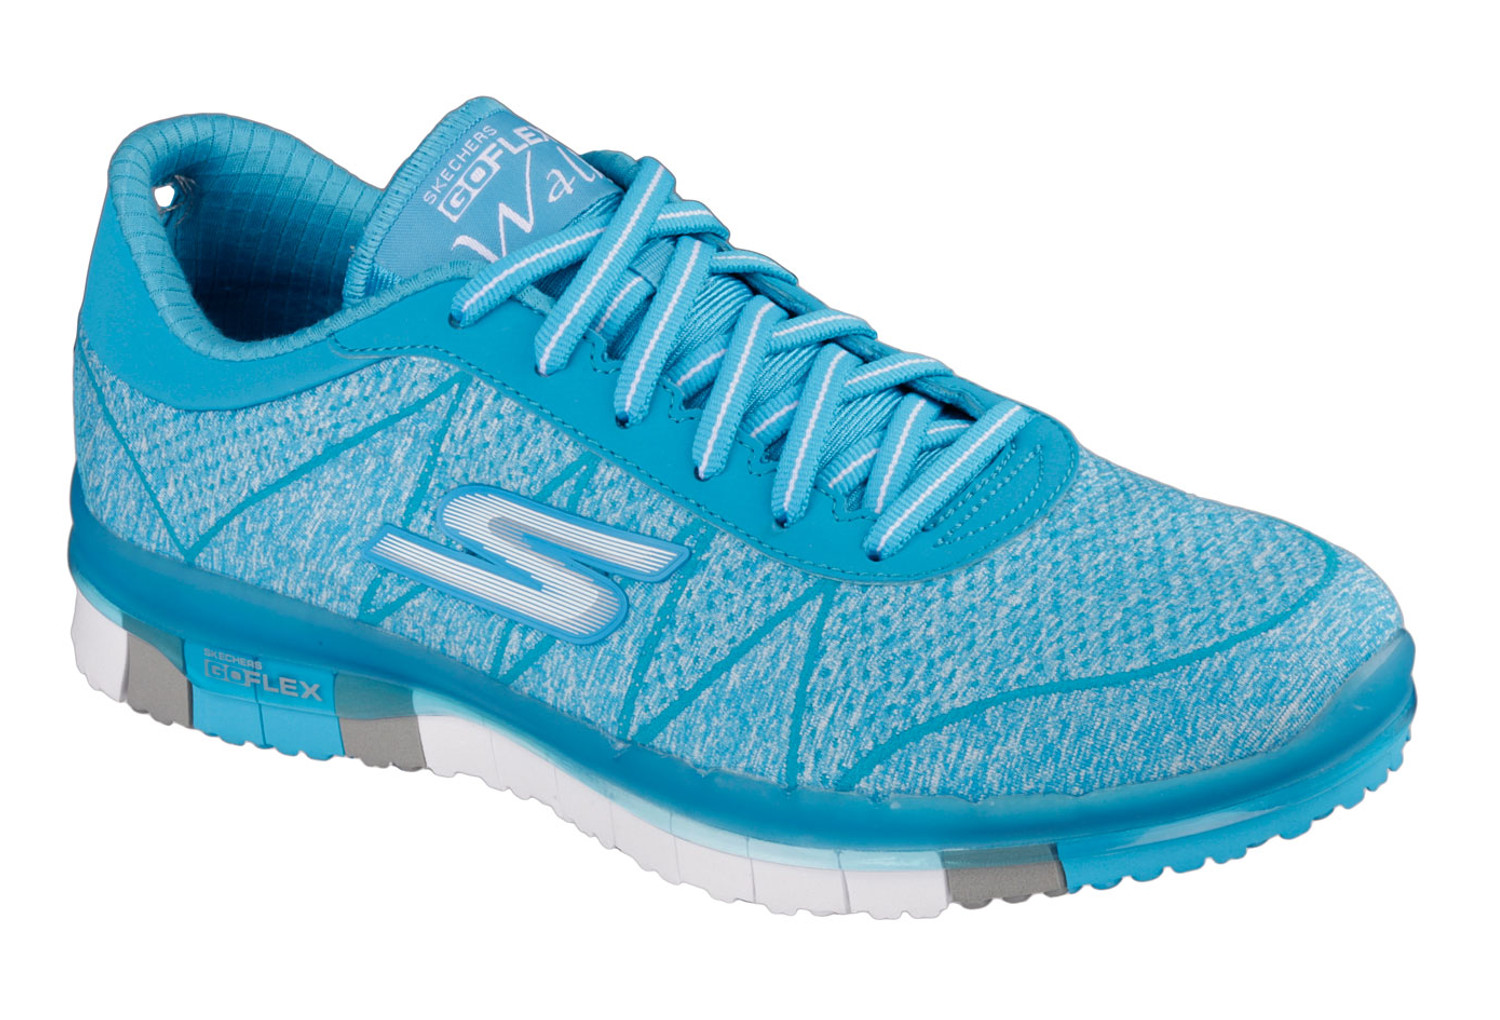 buying now outlet online crazy price SKECHERS Running Shoes GO FLEX Blue Women